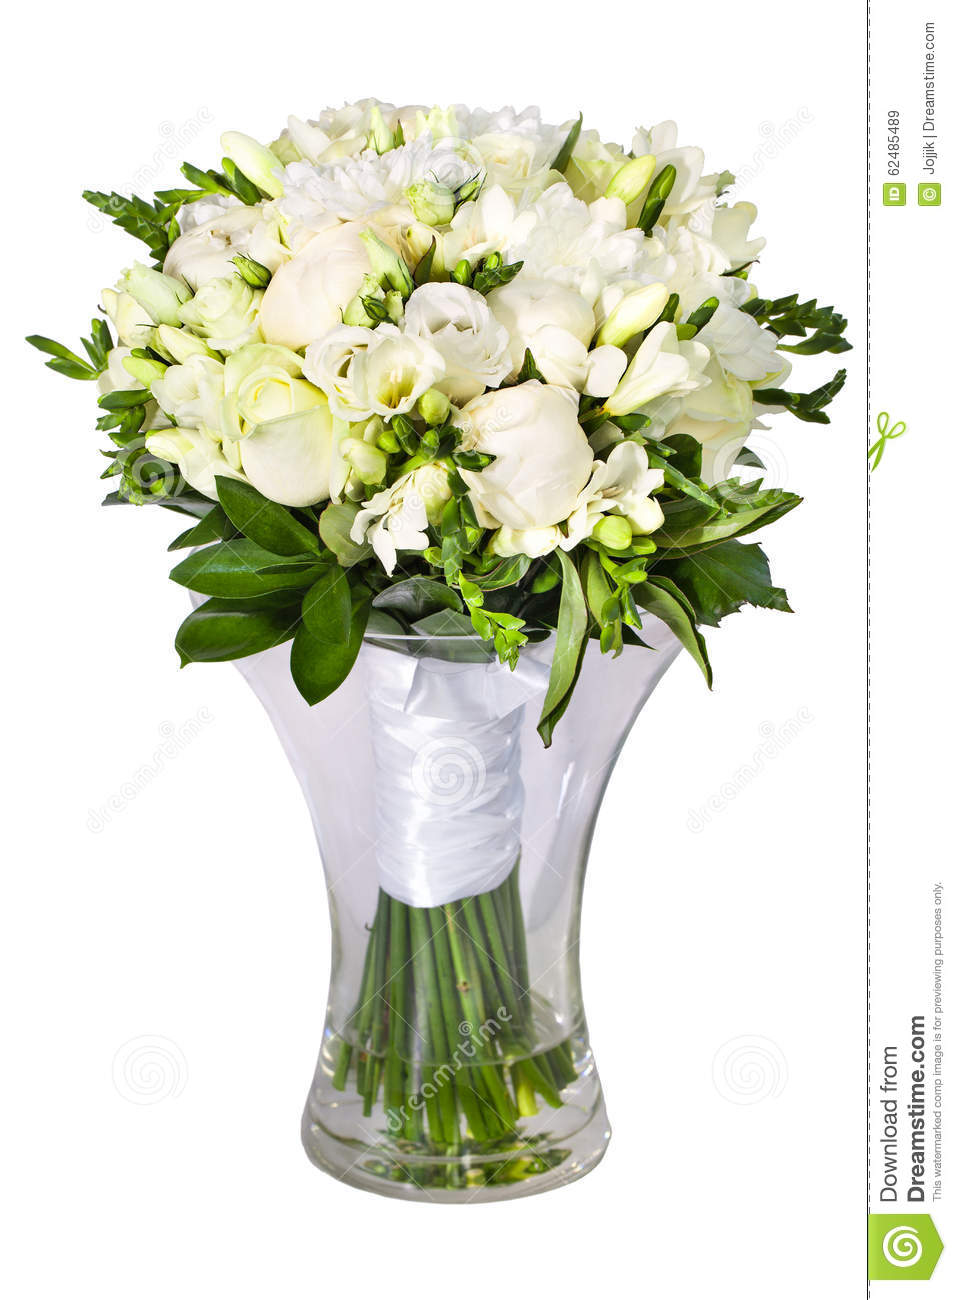 bright flower wedding bouquet in glass vase stock photo image 62485489. Black Bedroom Furniture Sets. Home Design Ideas